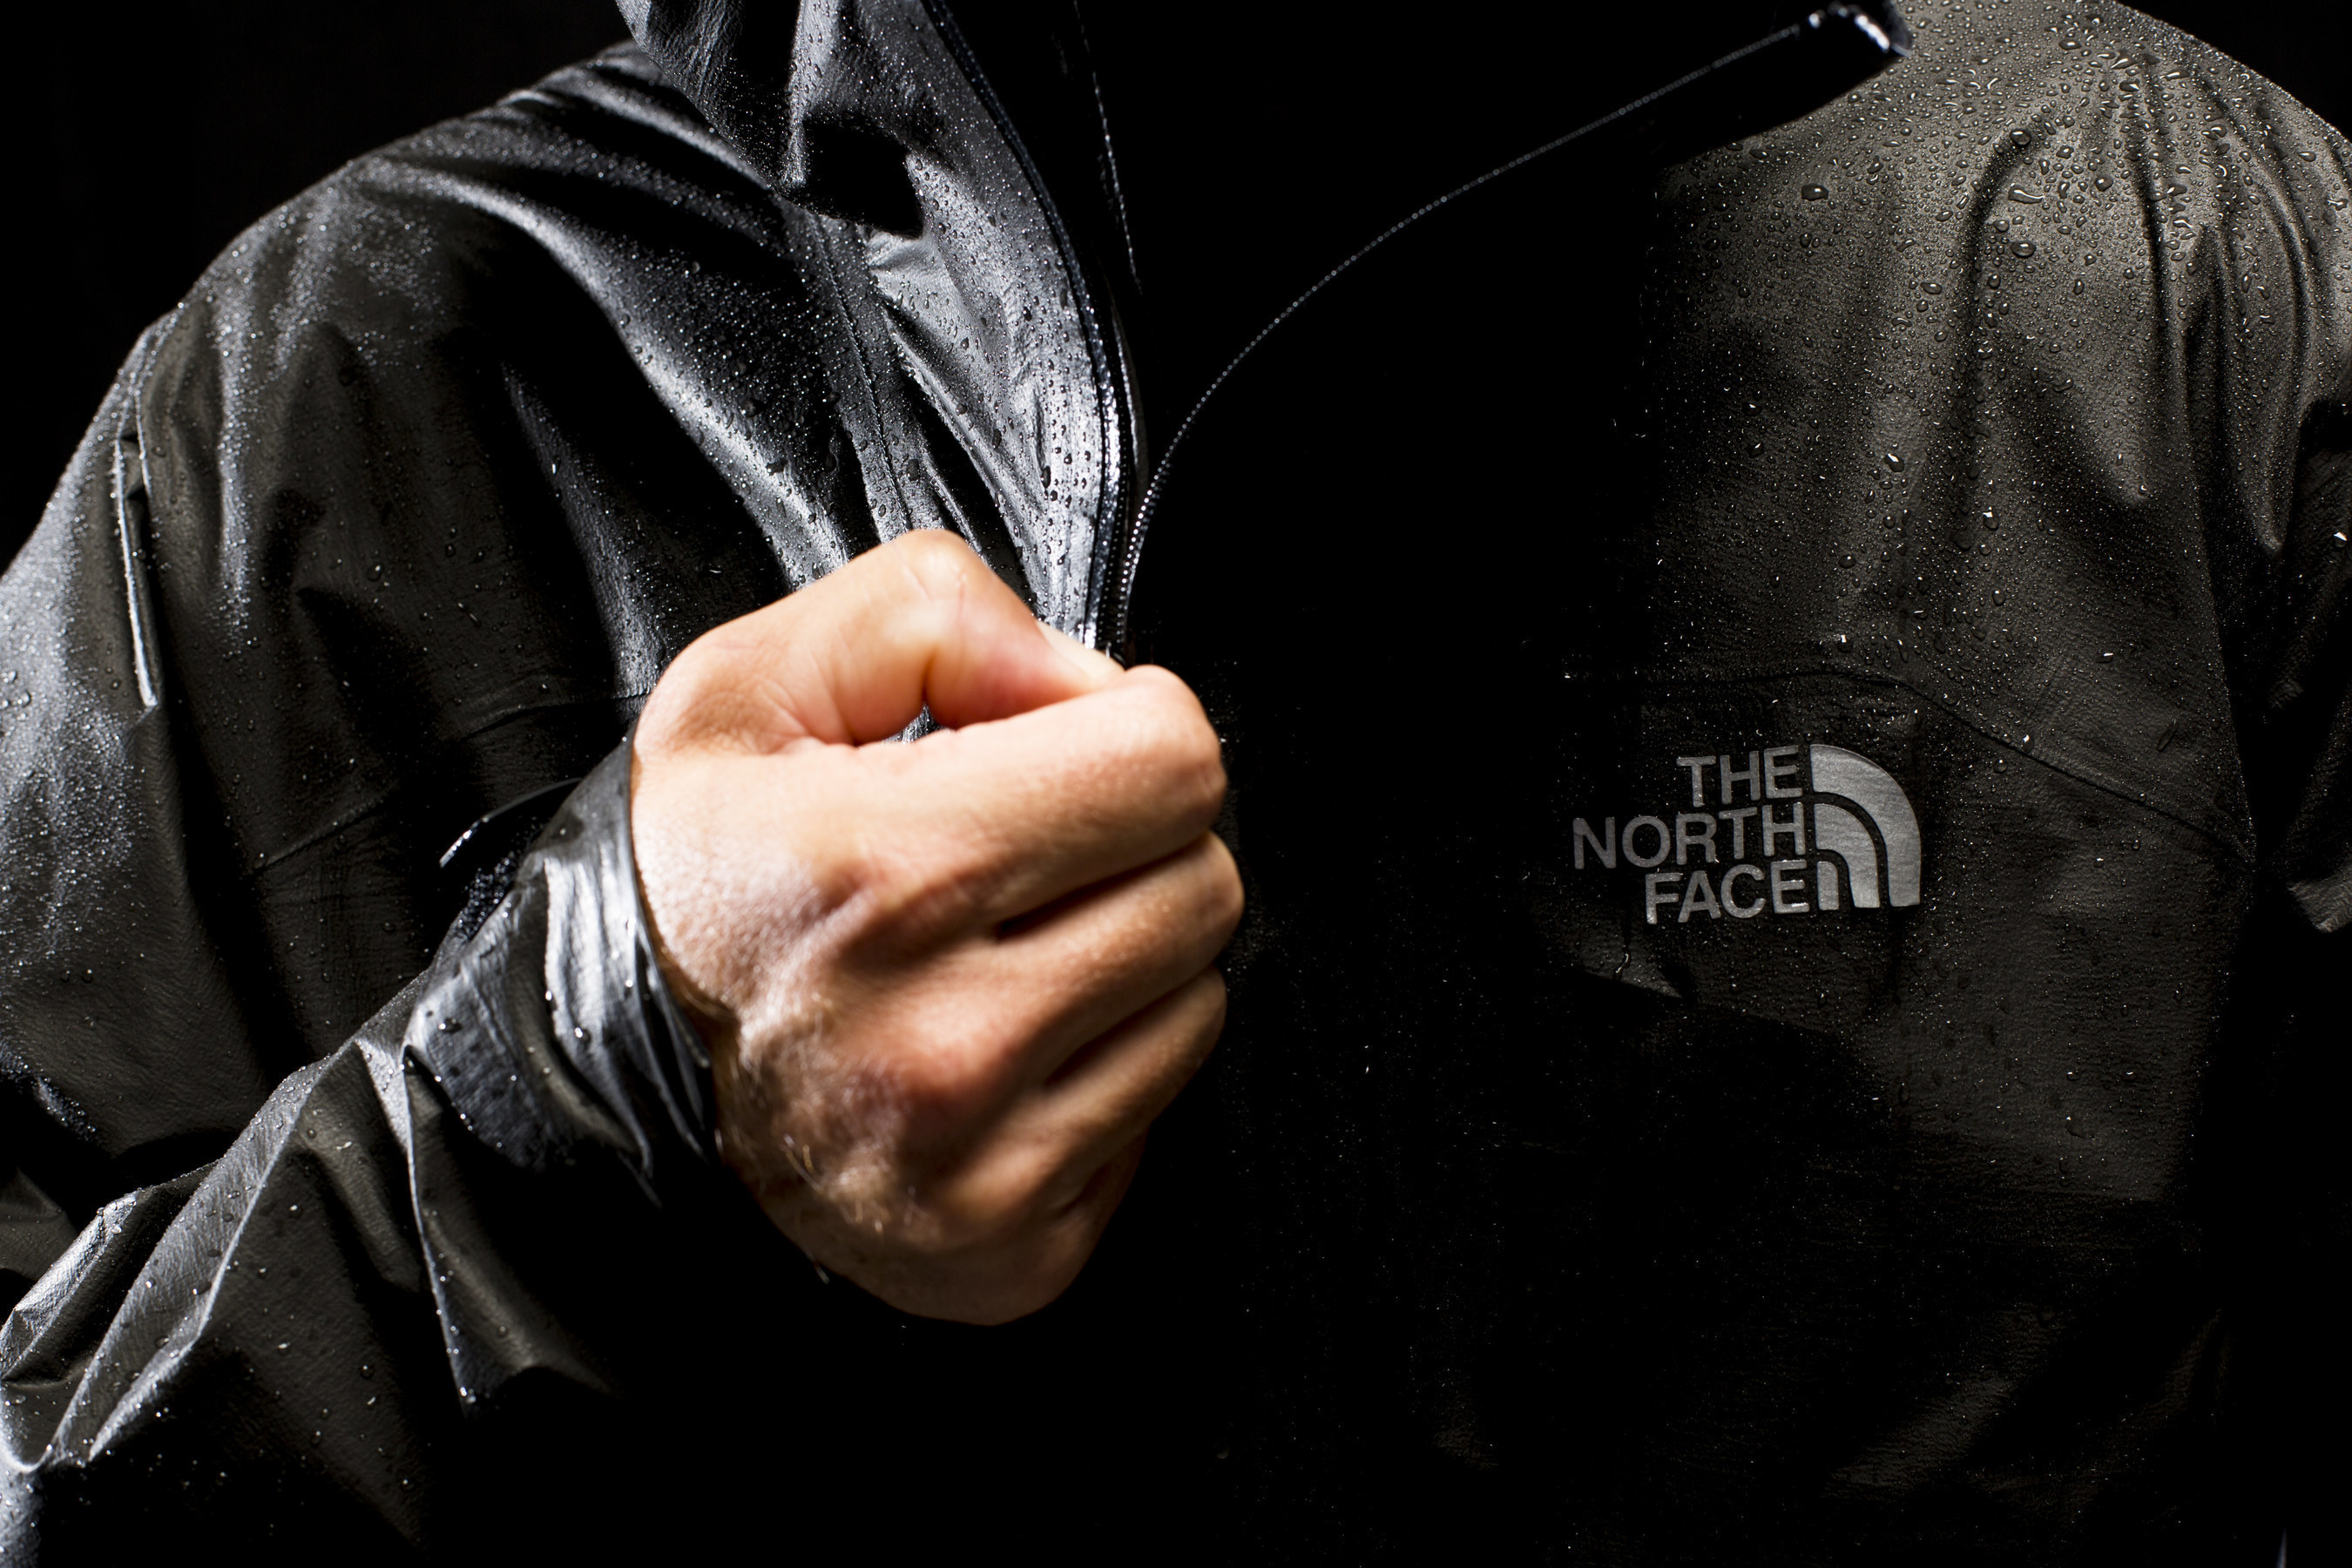 acf0e2a53 The North Face debuts its most breathable jacket with the HyperAir ...